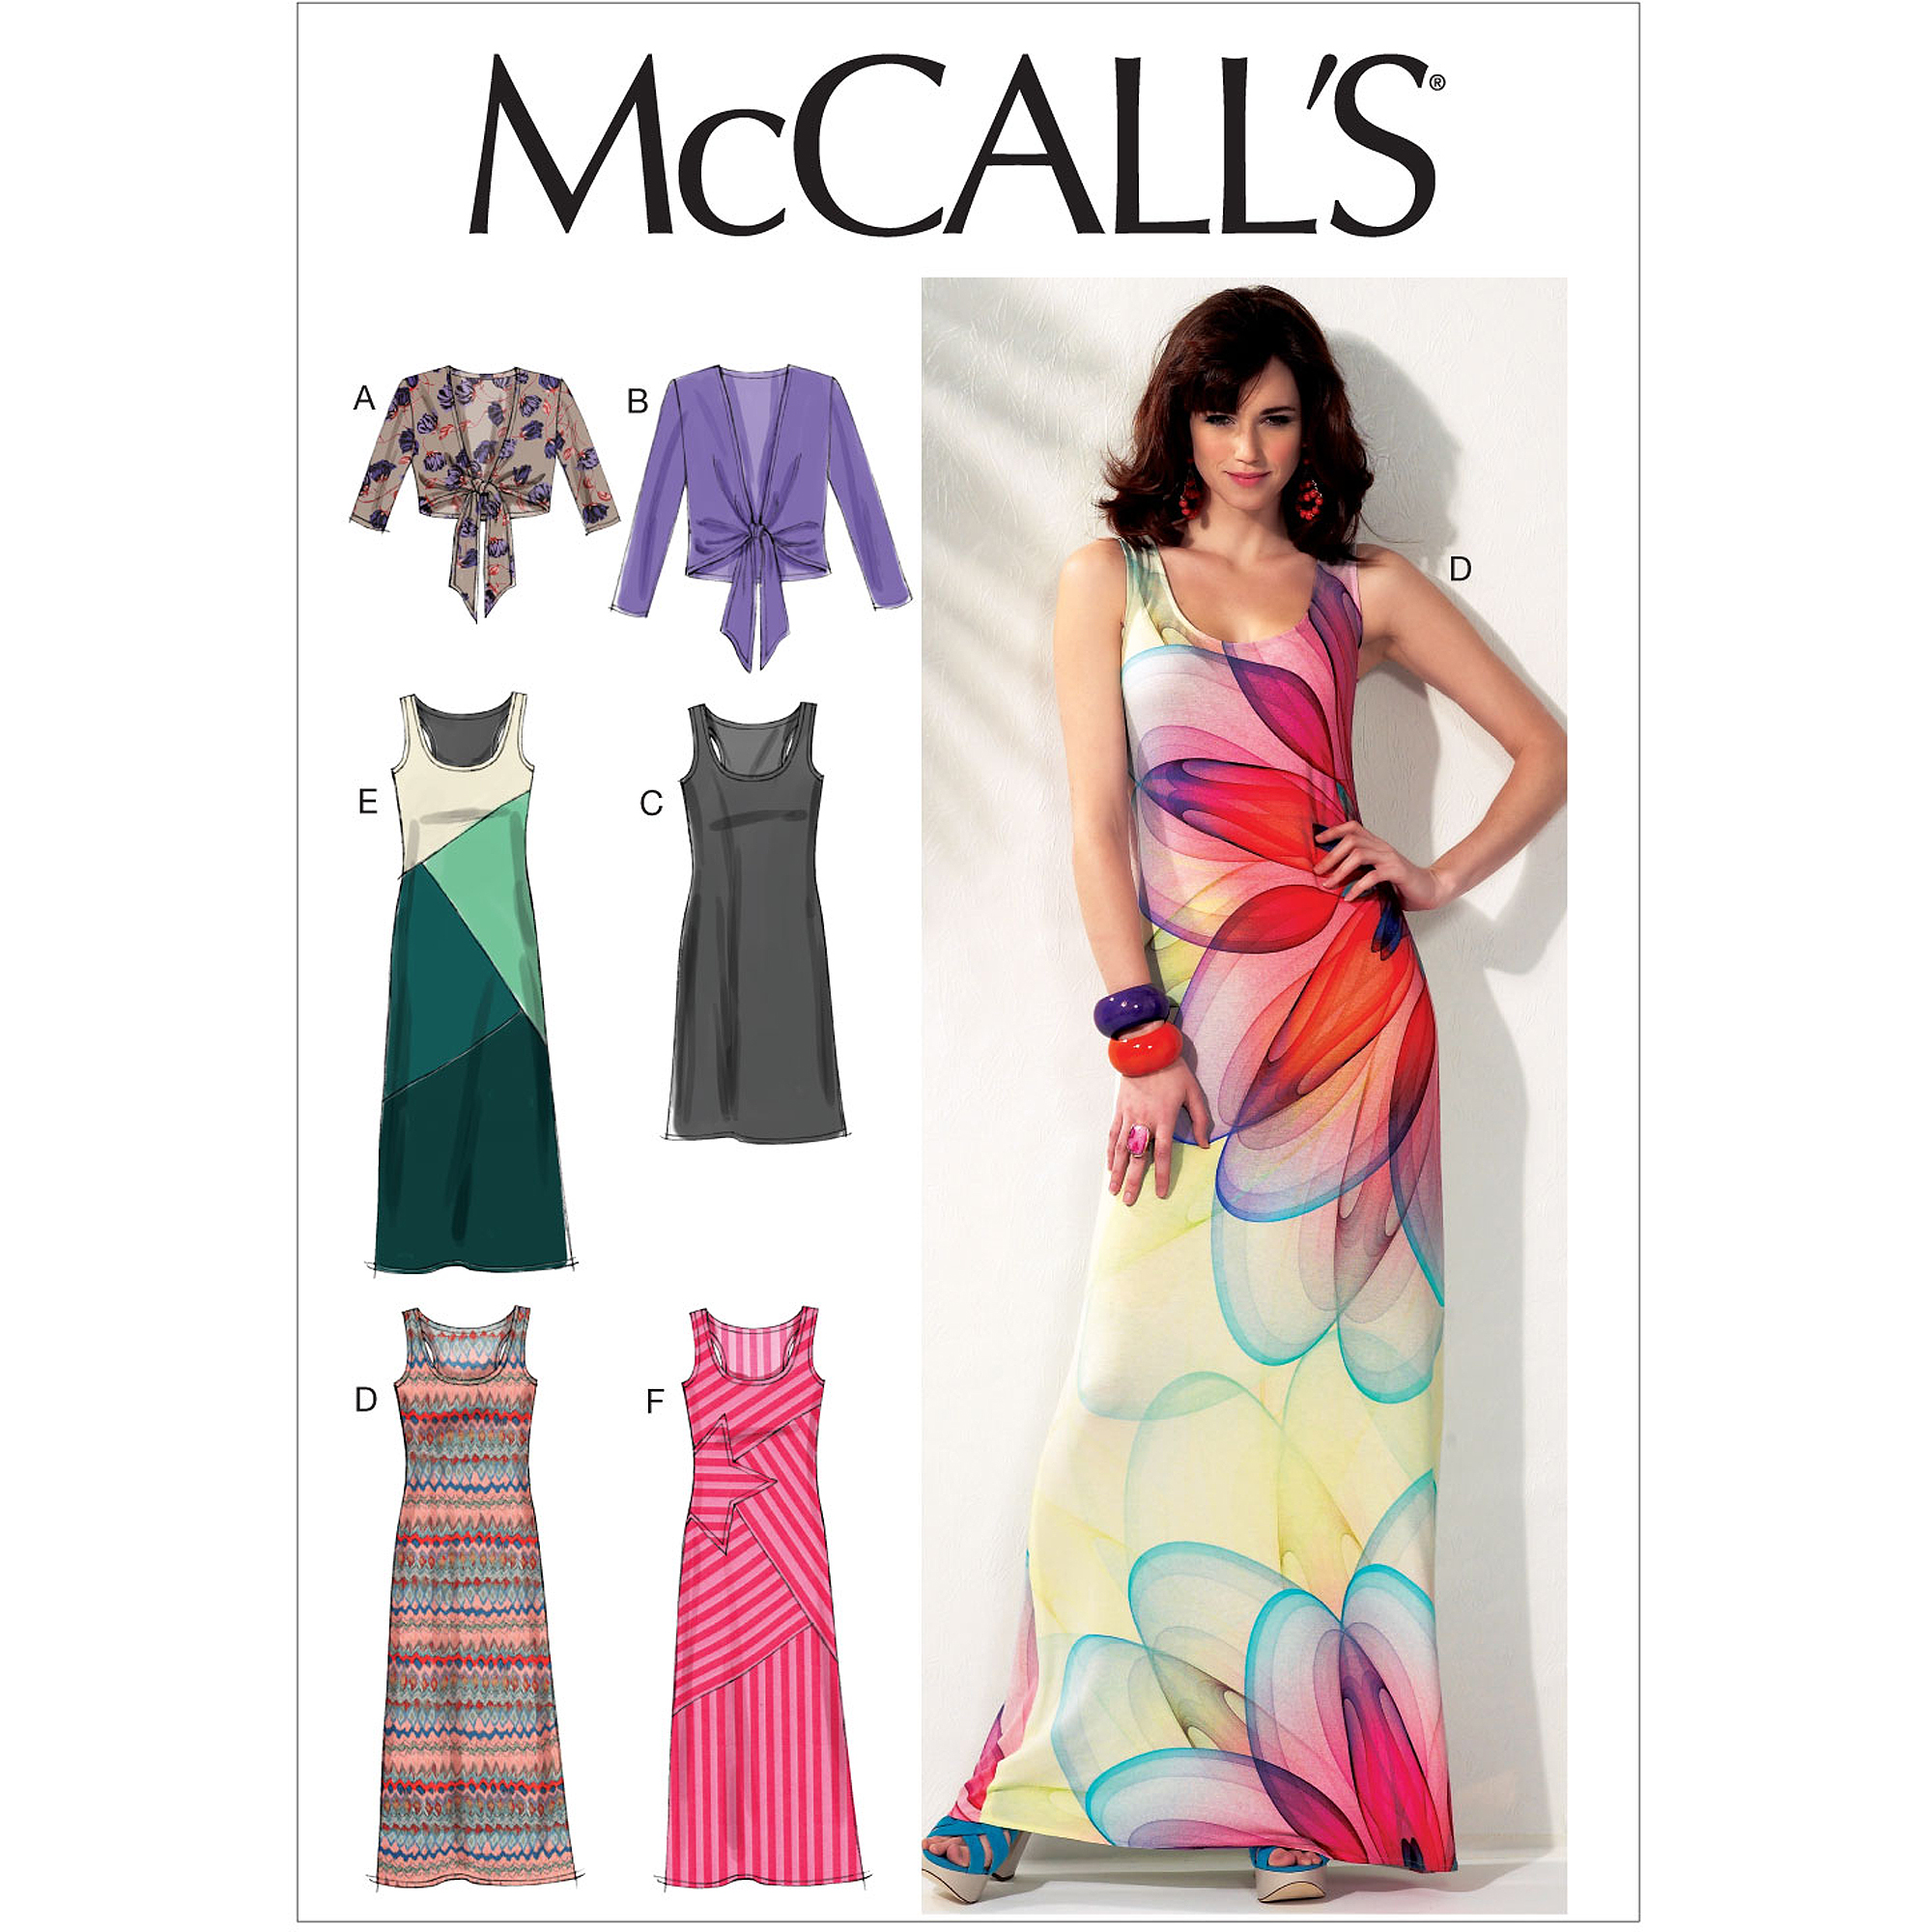 McCall's Pattern Misses' Unlined Jackets and Dresses, A5 (6, 8, 10, 12, 14)